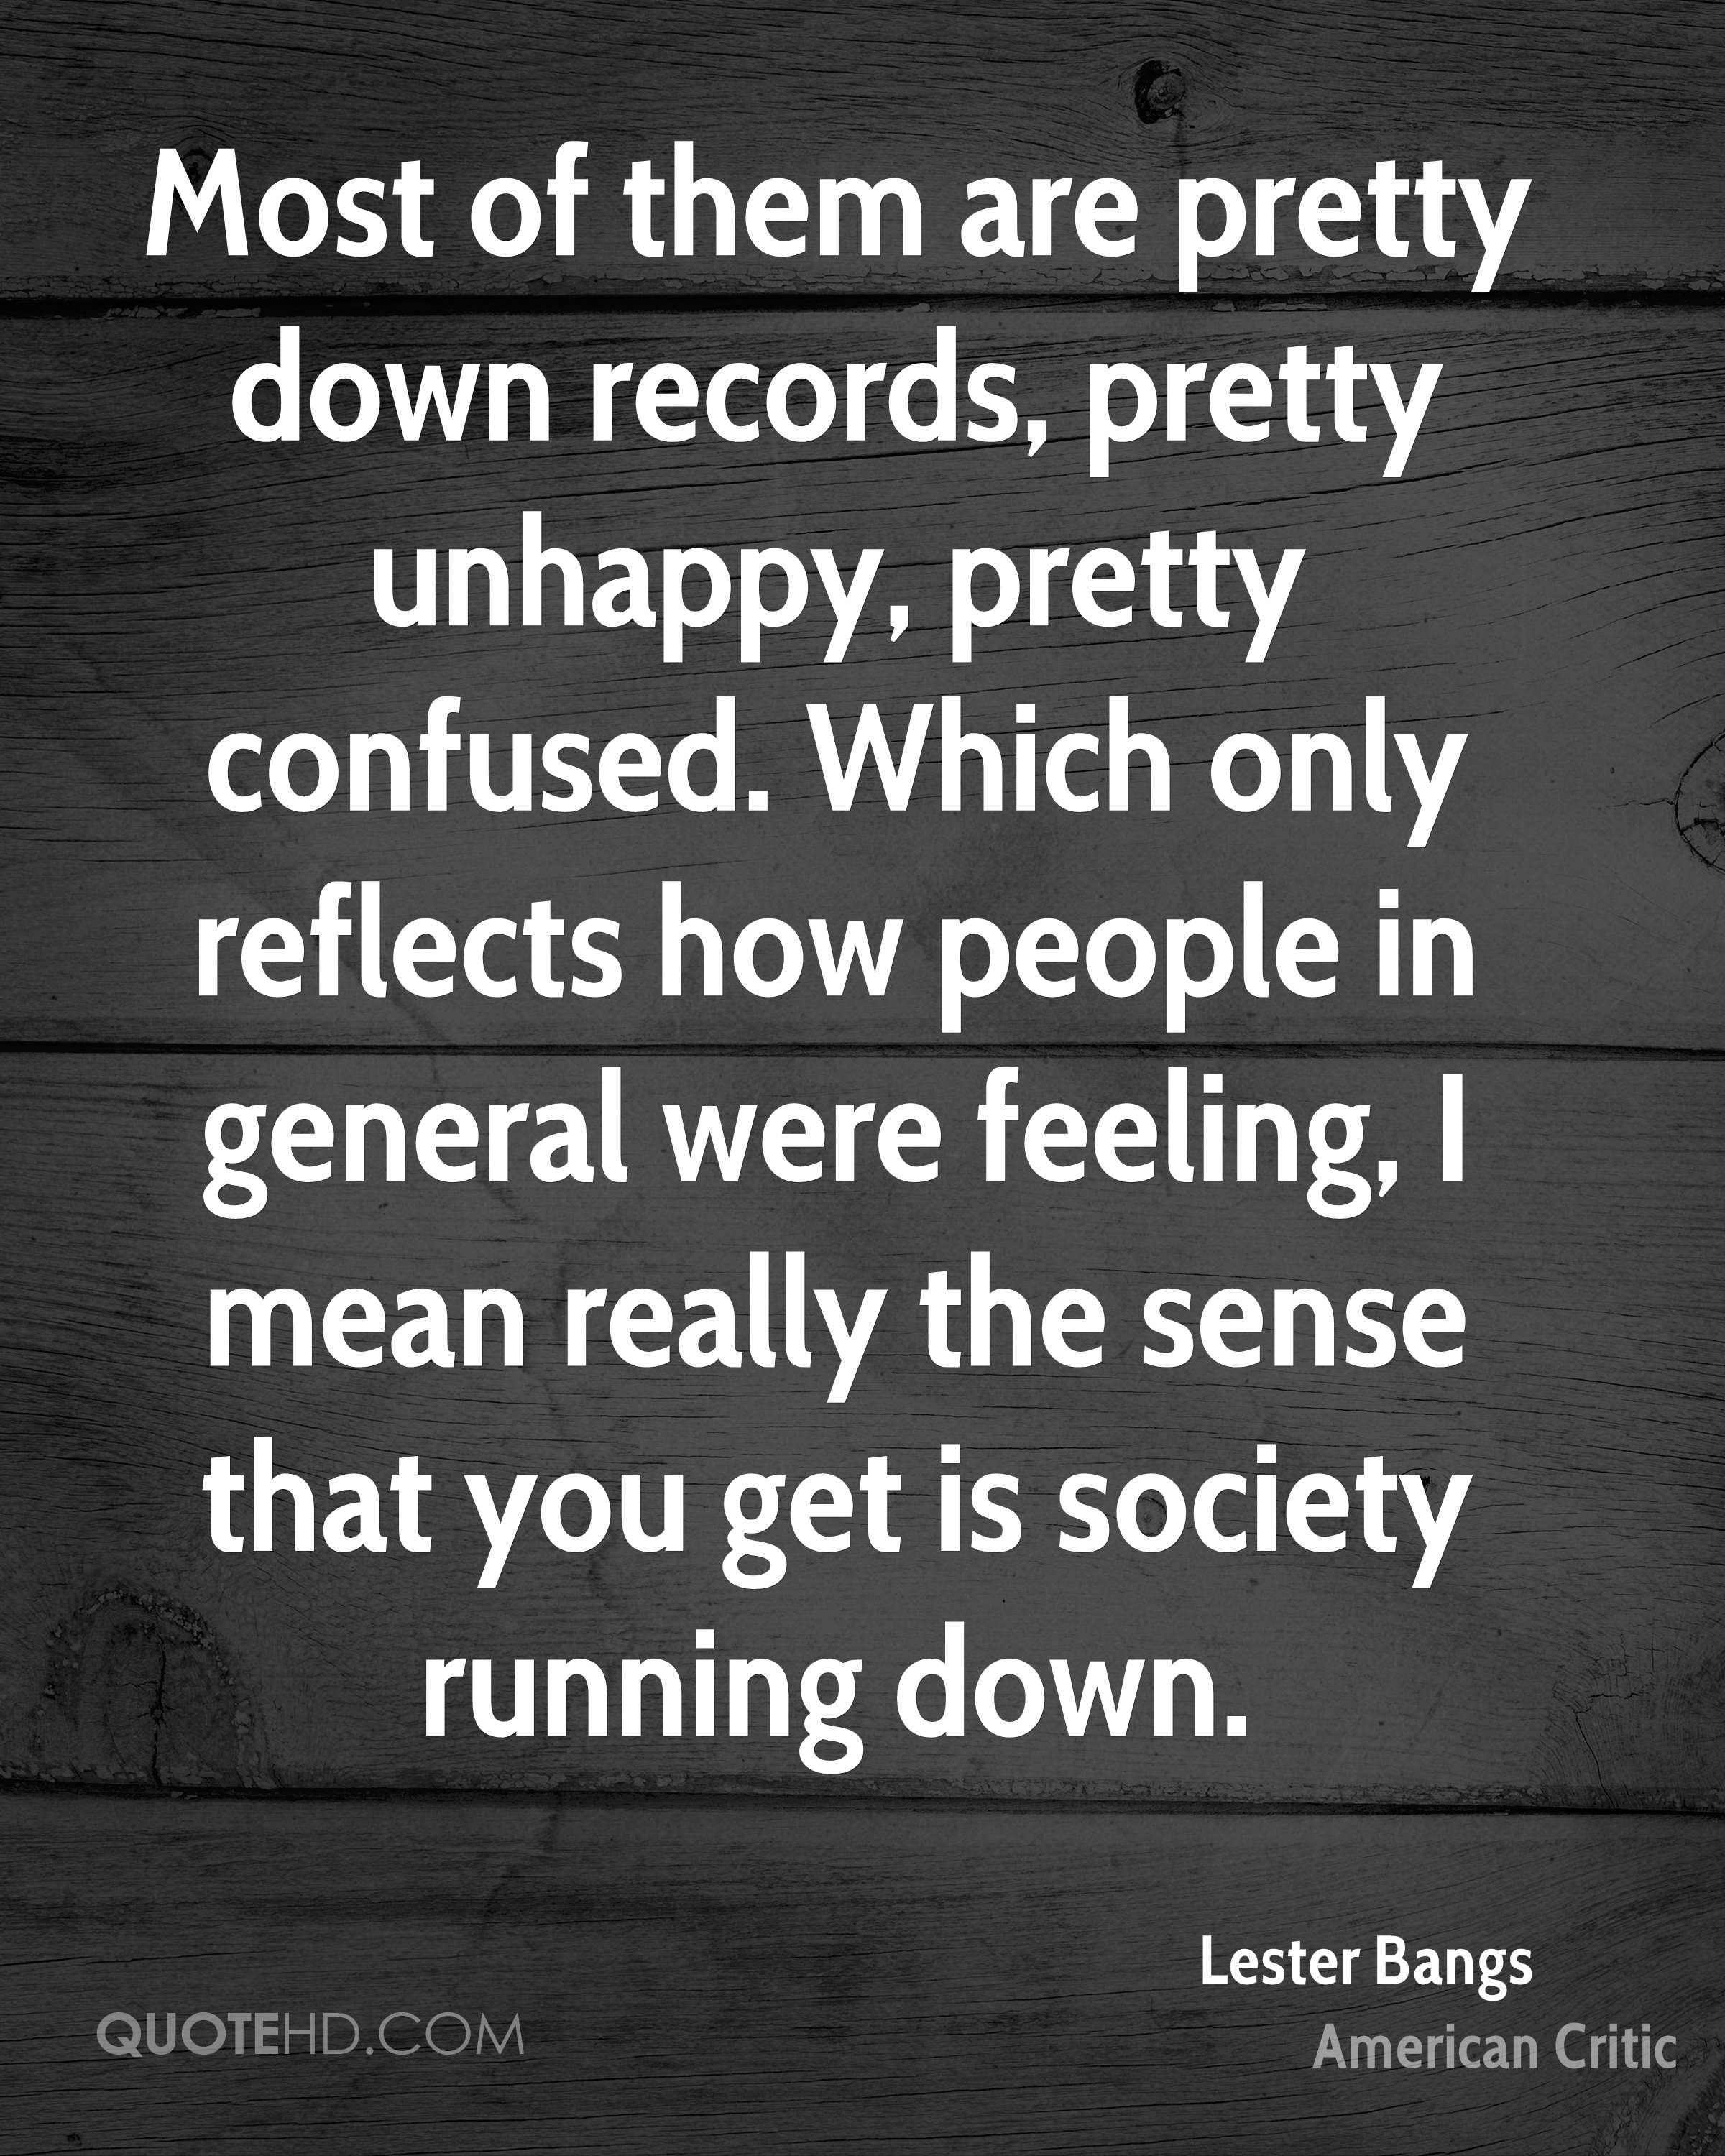 Most of them are pretty down records, pretty unhappy, pretty confused. Which only reflects how people in general were feeling, I mean really the sense that you get is society running down.